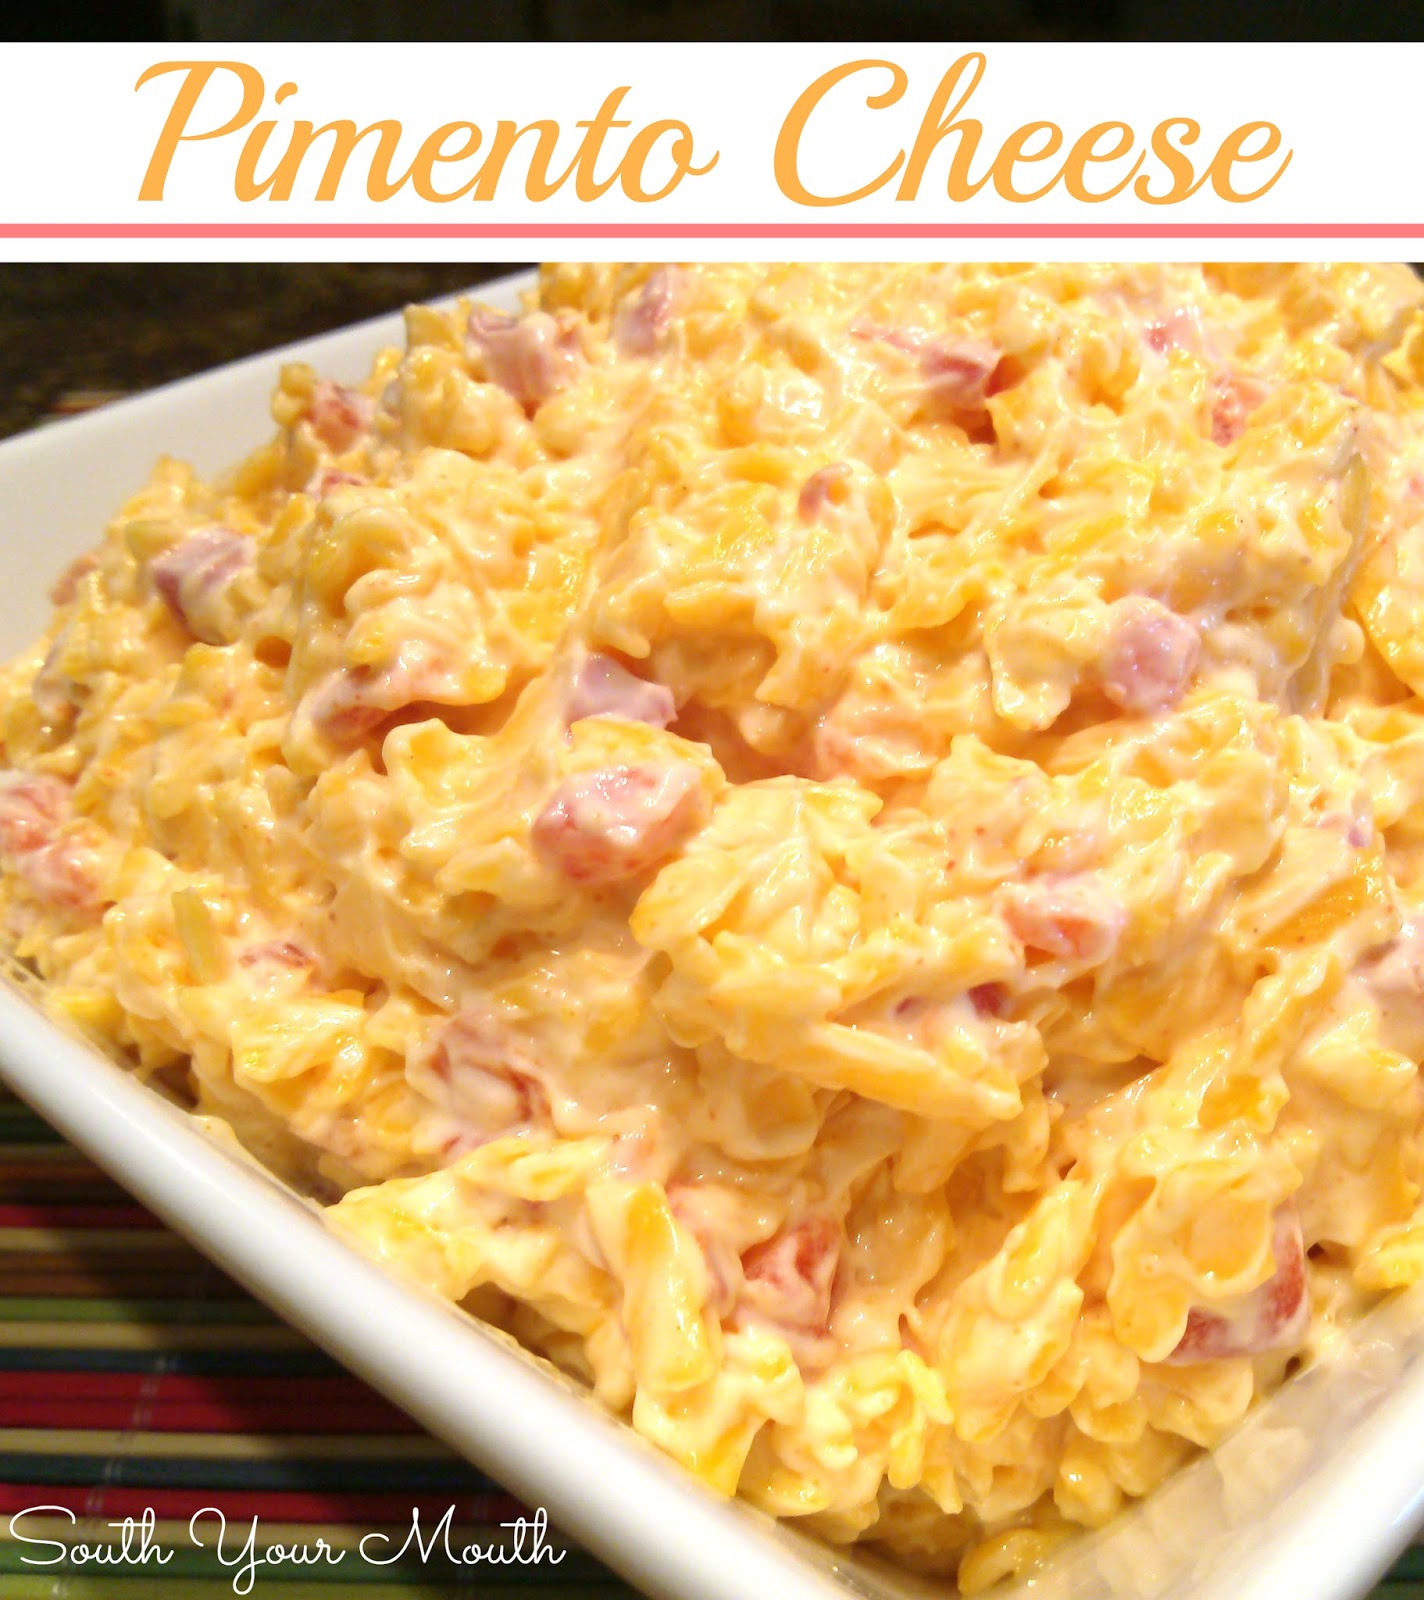 pimento cheese 1 pound cheddar cheese 1 4 ounce jar